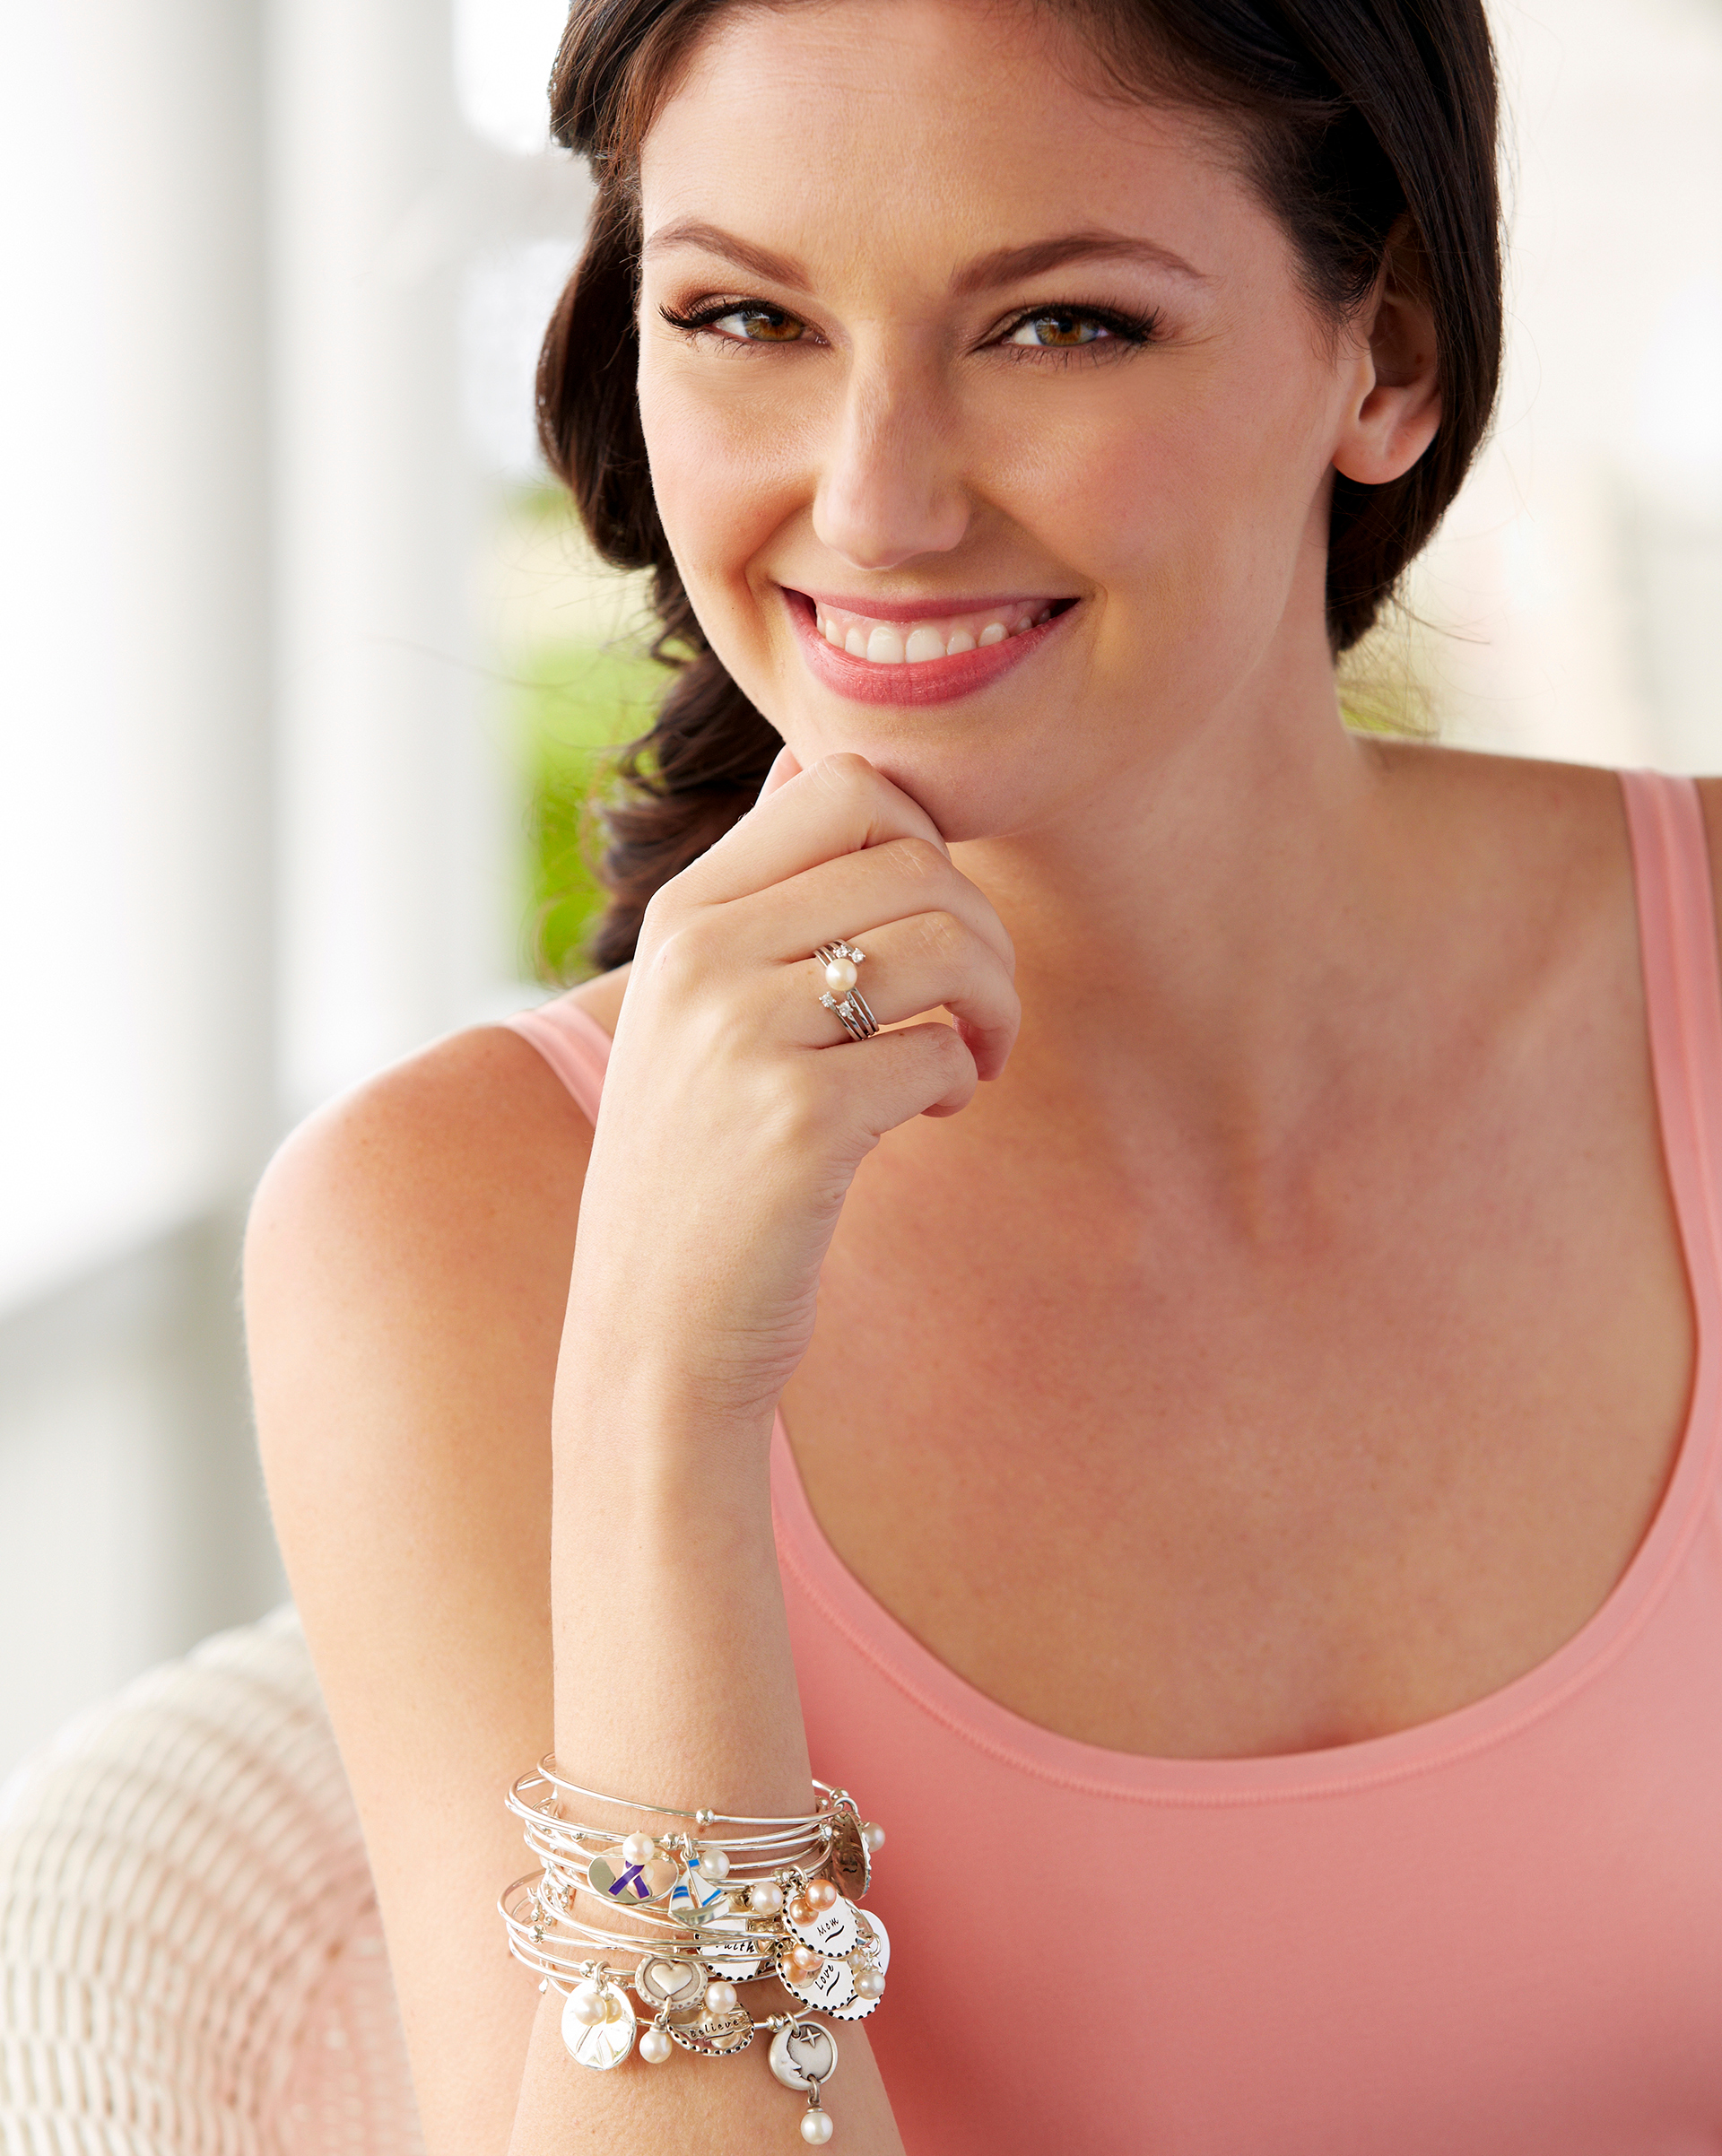 Woman posing wearing a pearl ring and bracelet.